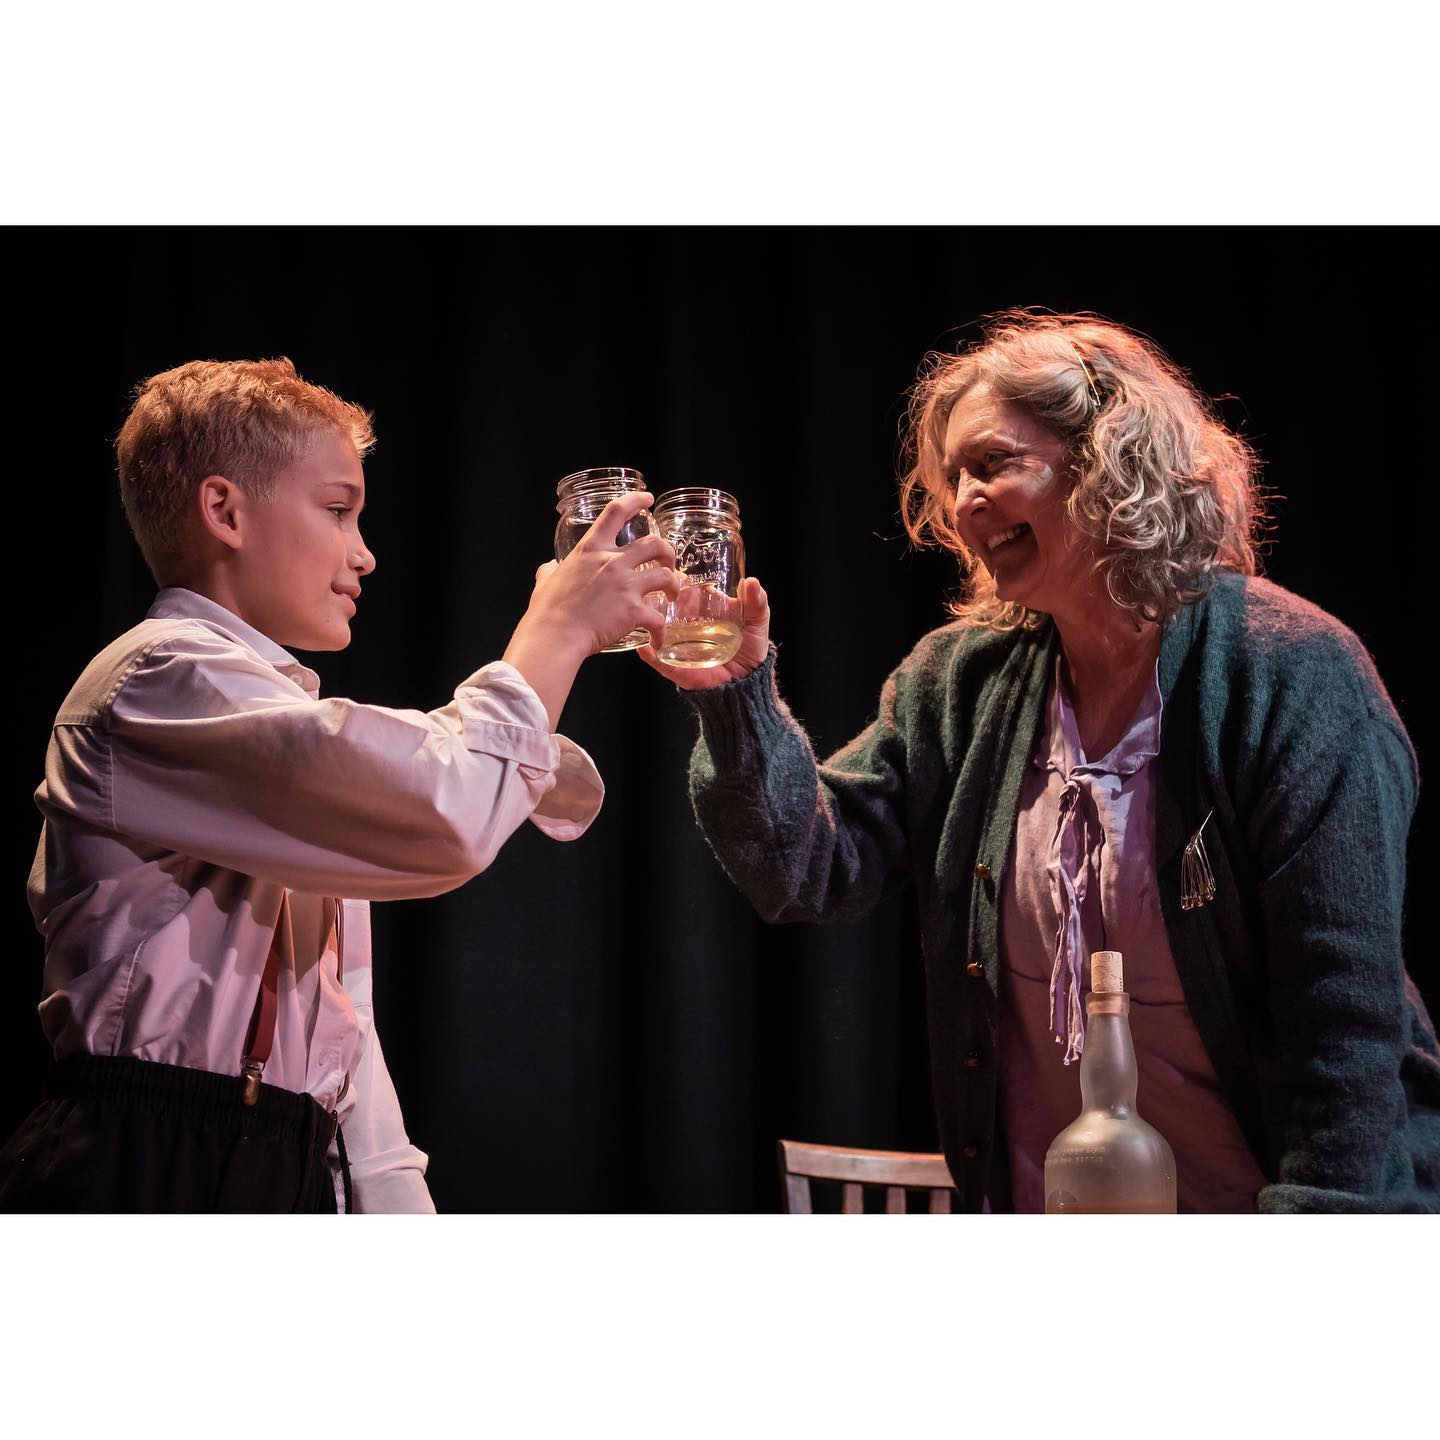 Zak Meisenhelter, Carol Hickey (photo from Alchemy Theatre Company)